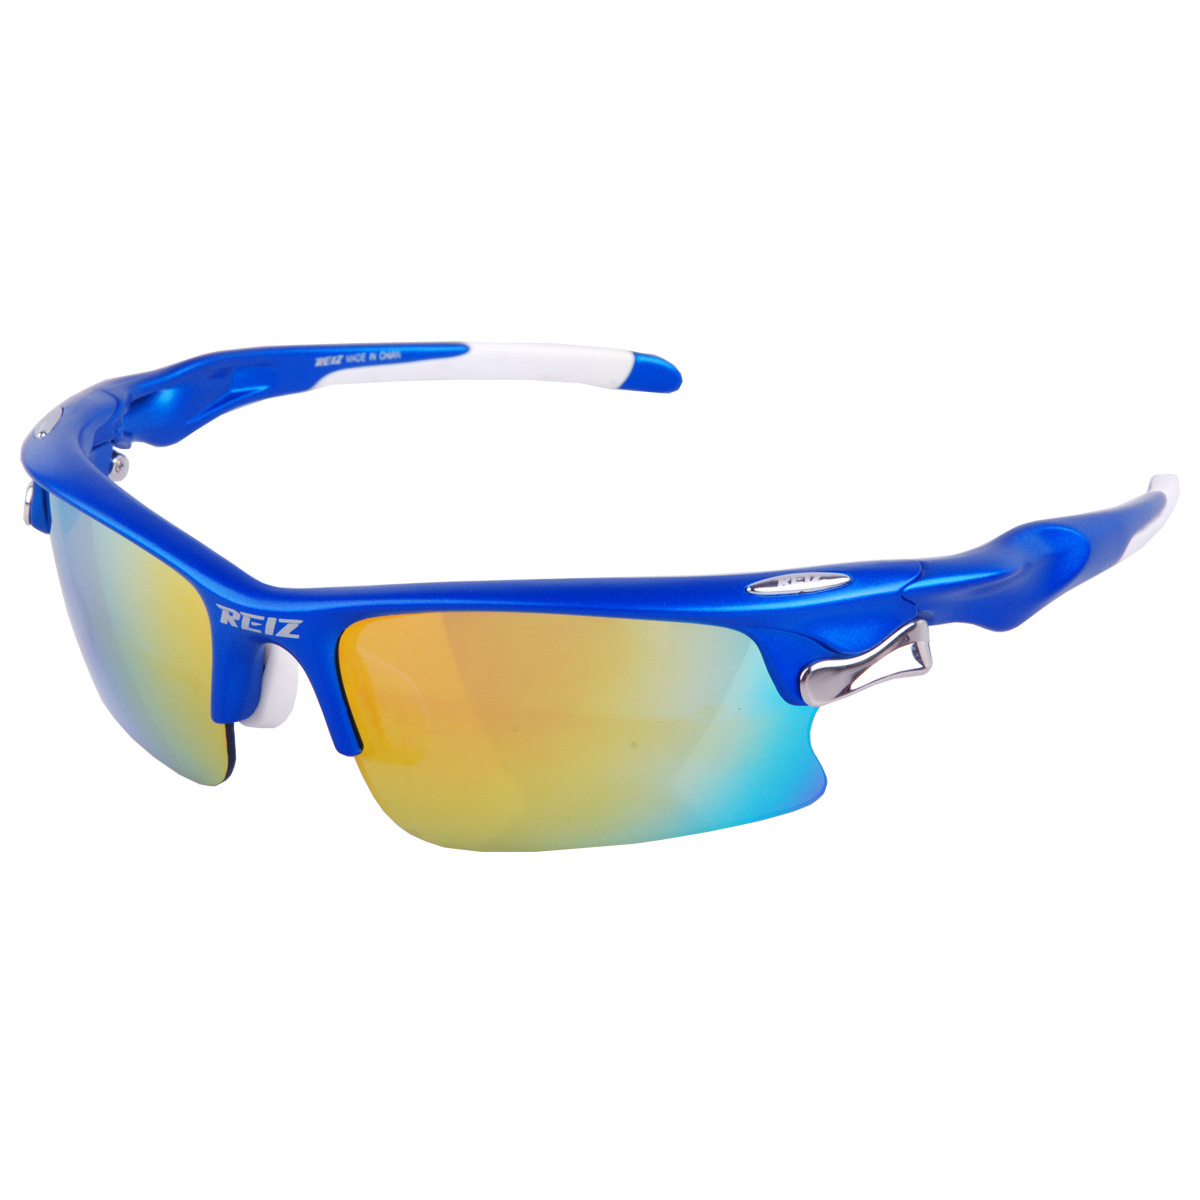 Mumian Rui Zhi Riding Outdoor Glasses Myopia Polarized Light Bicycle Glass Rz101